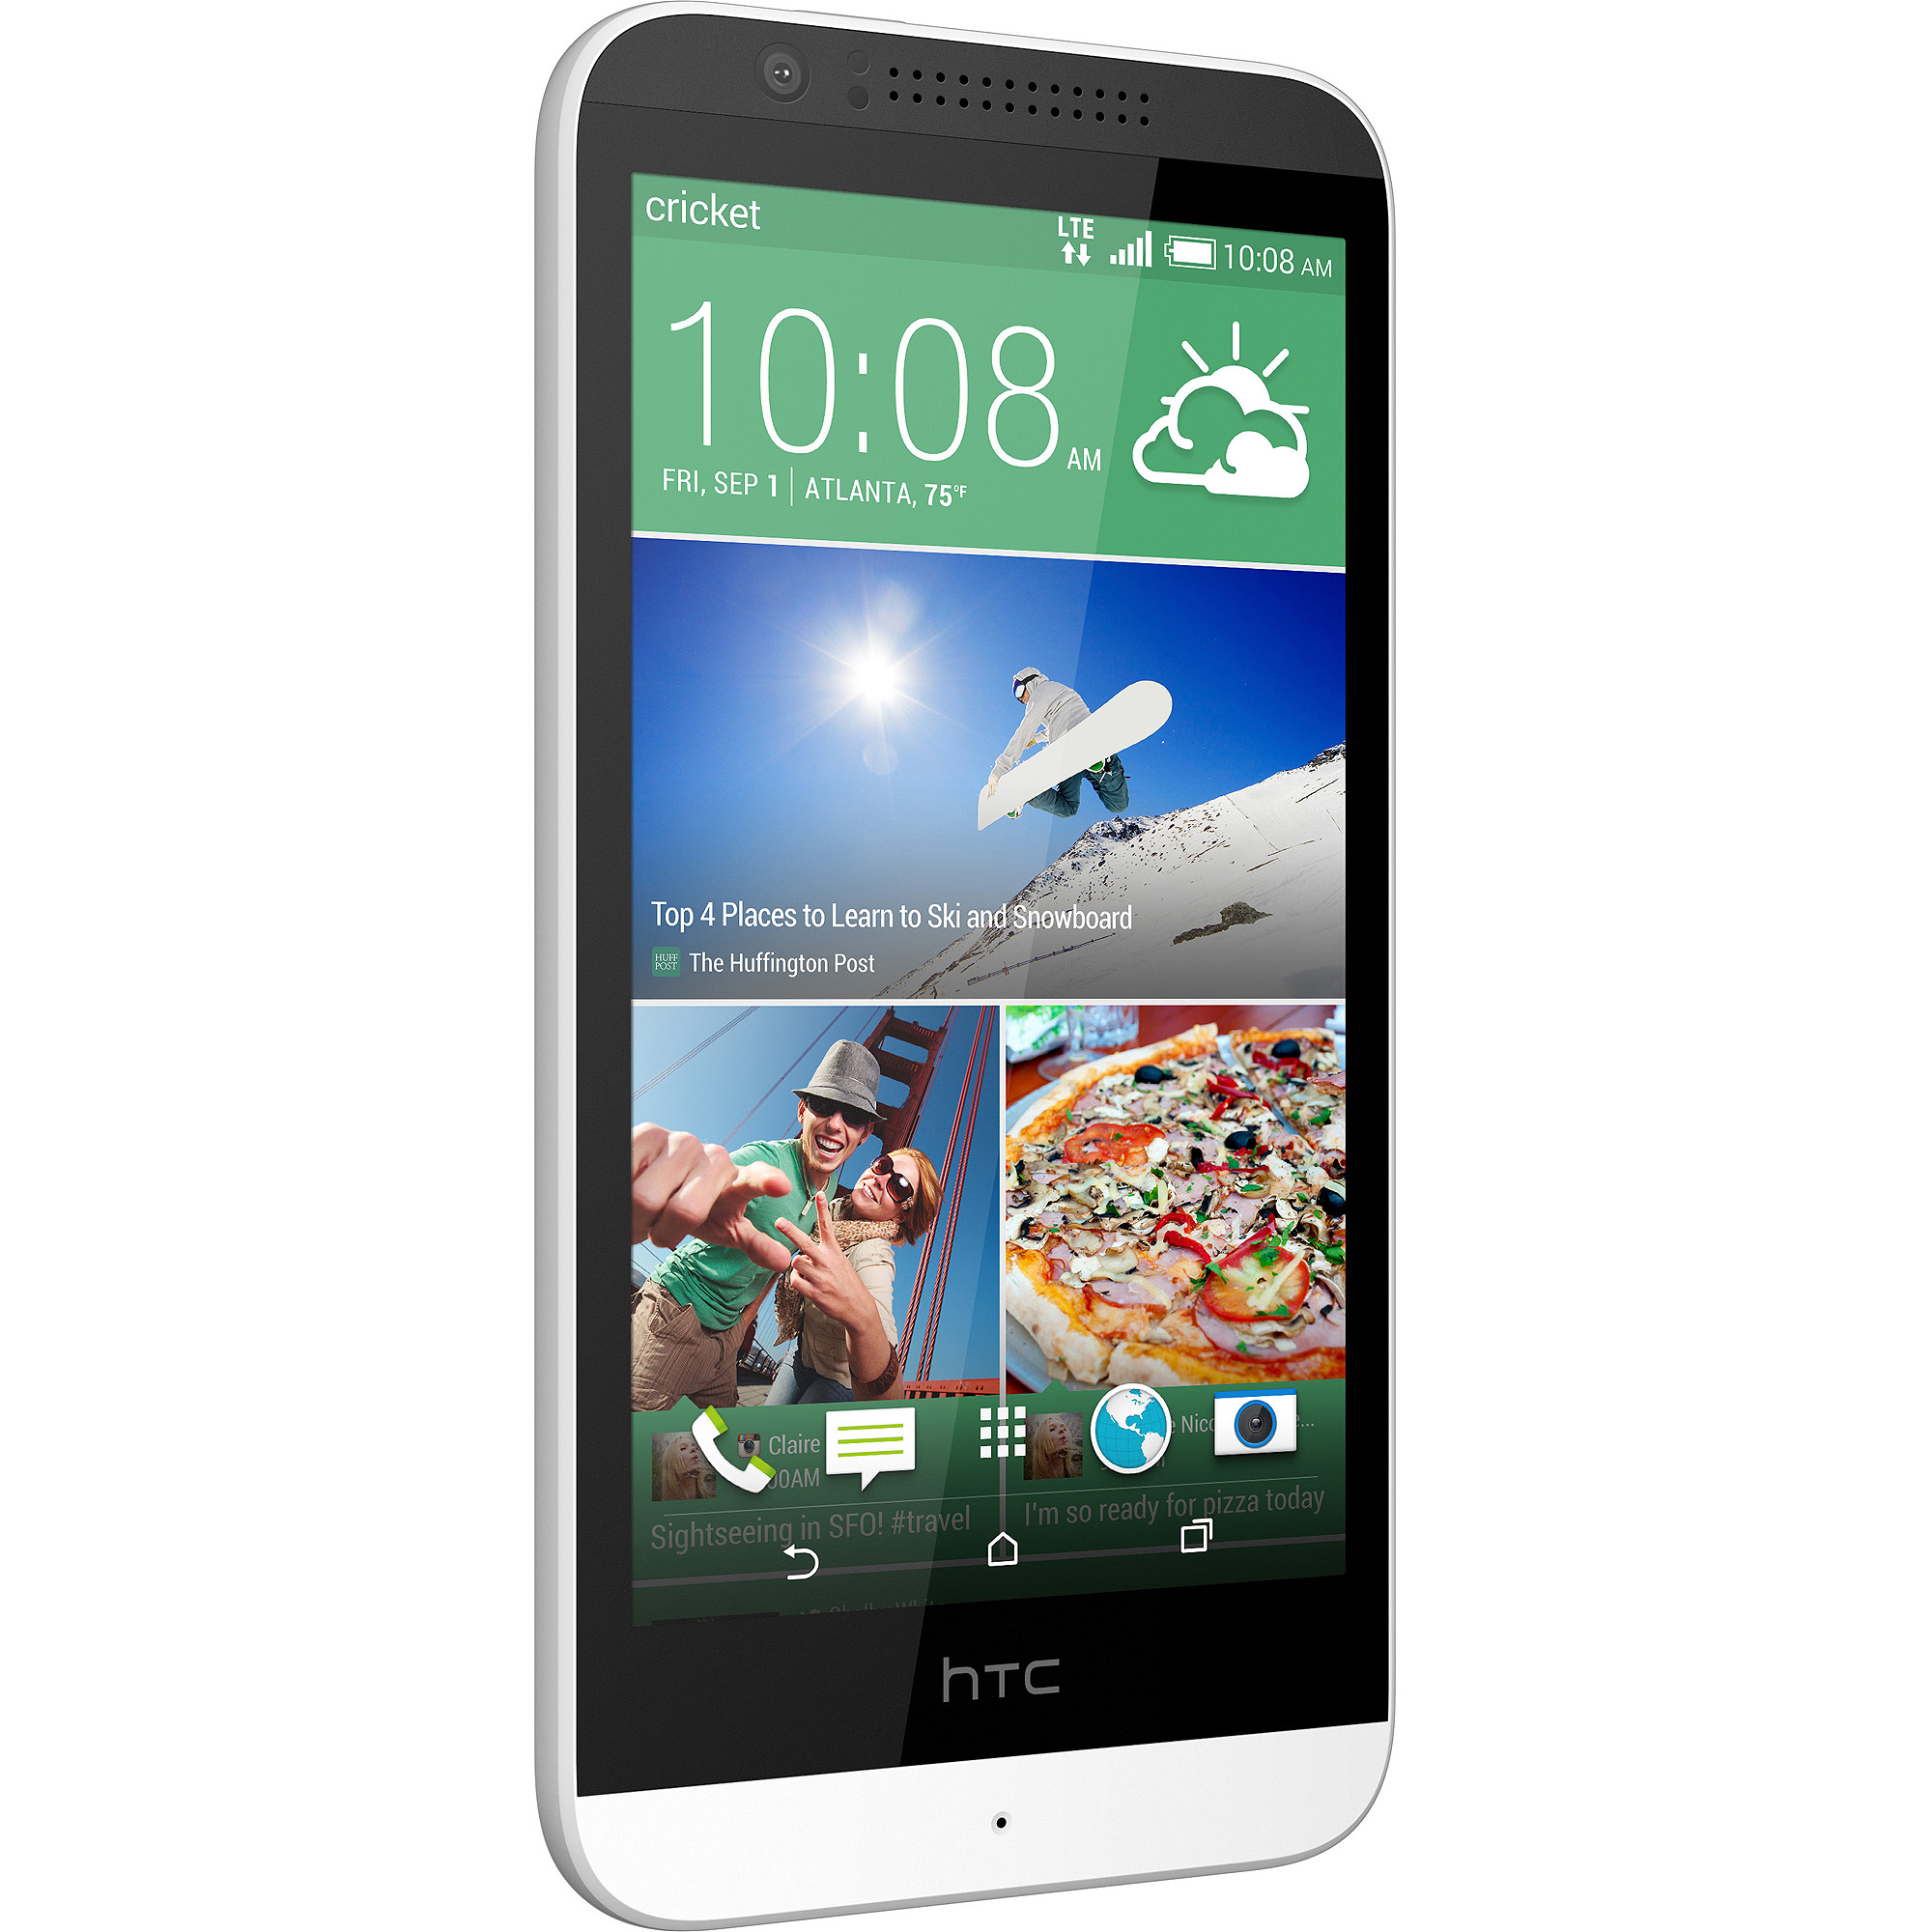 C cricket phones for sale existing customers - C Cricket Phones For Sale Existing Customers 6